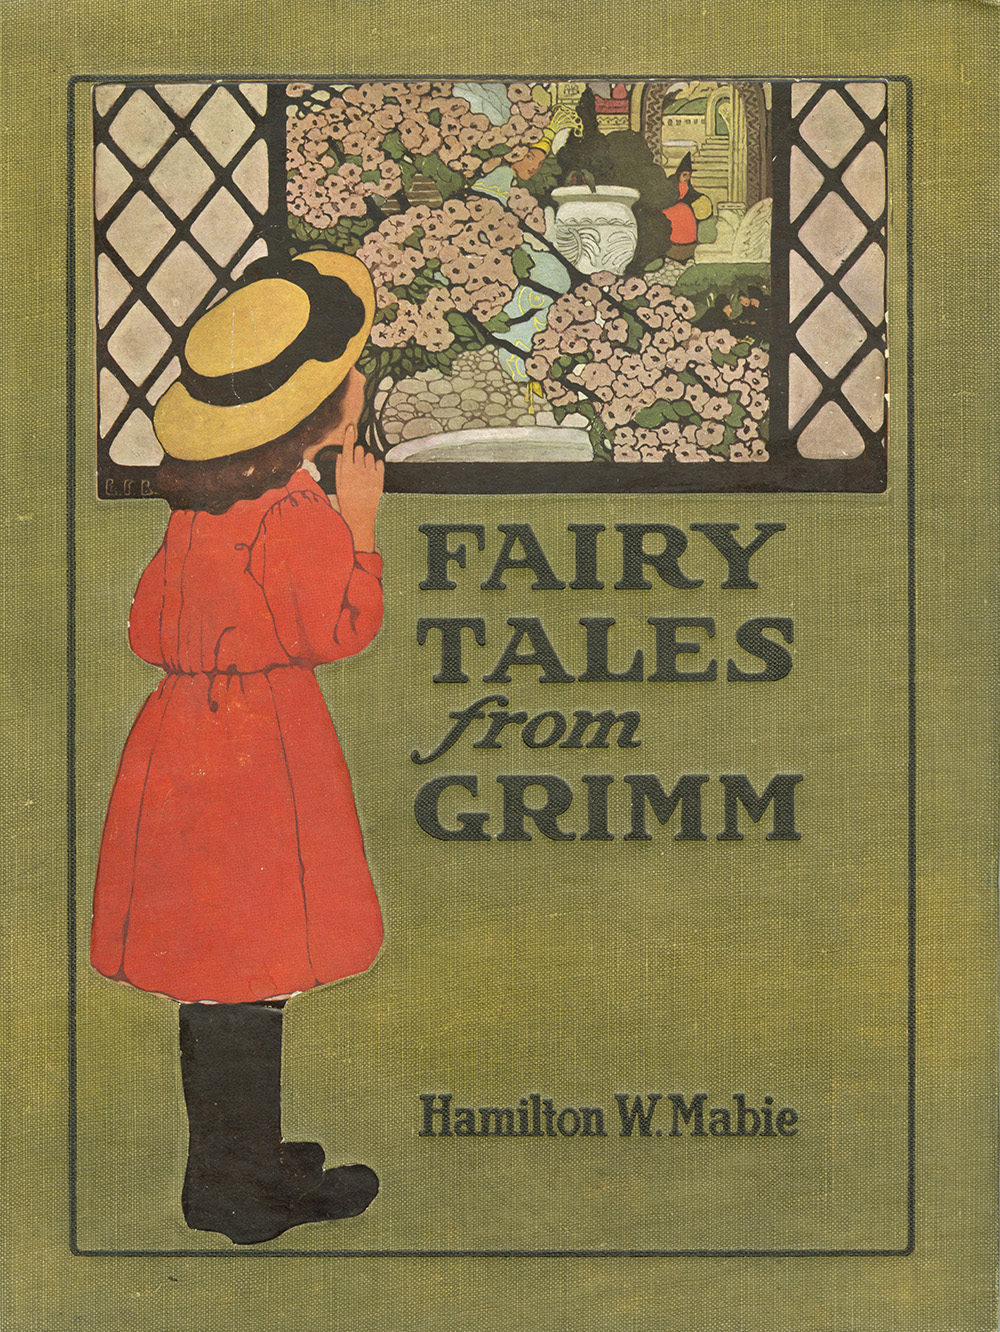 Ethel Franklin Betts, cover design for  Fairy Tales from Grimm . Edited with an introduction written by Hamilton W. Mabie. Published in 1909 by Edw. Stern & Co. Inc.